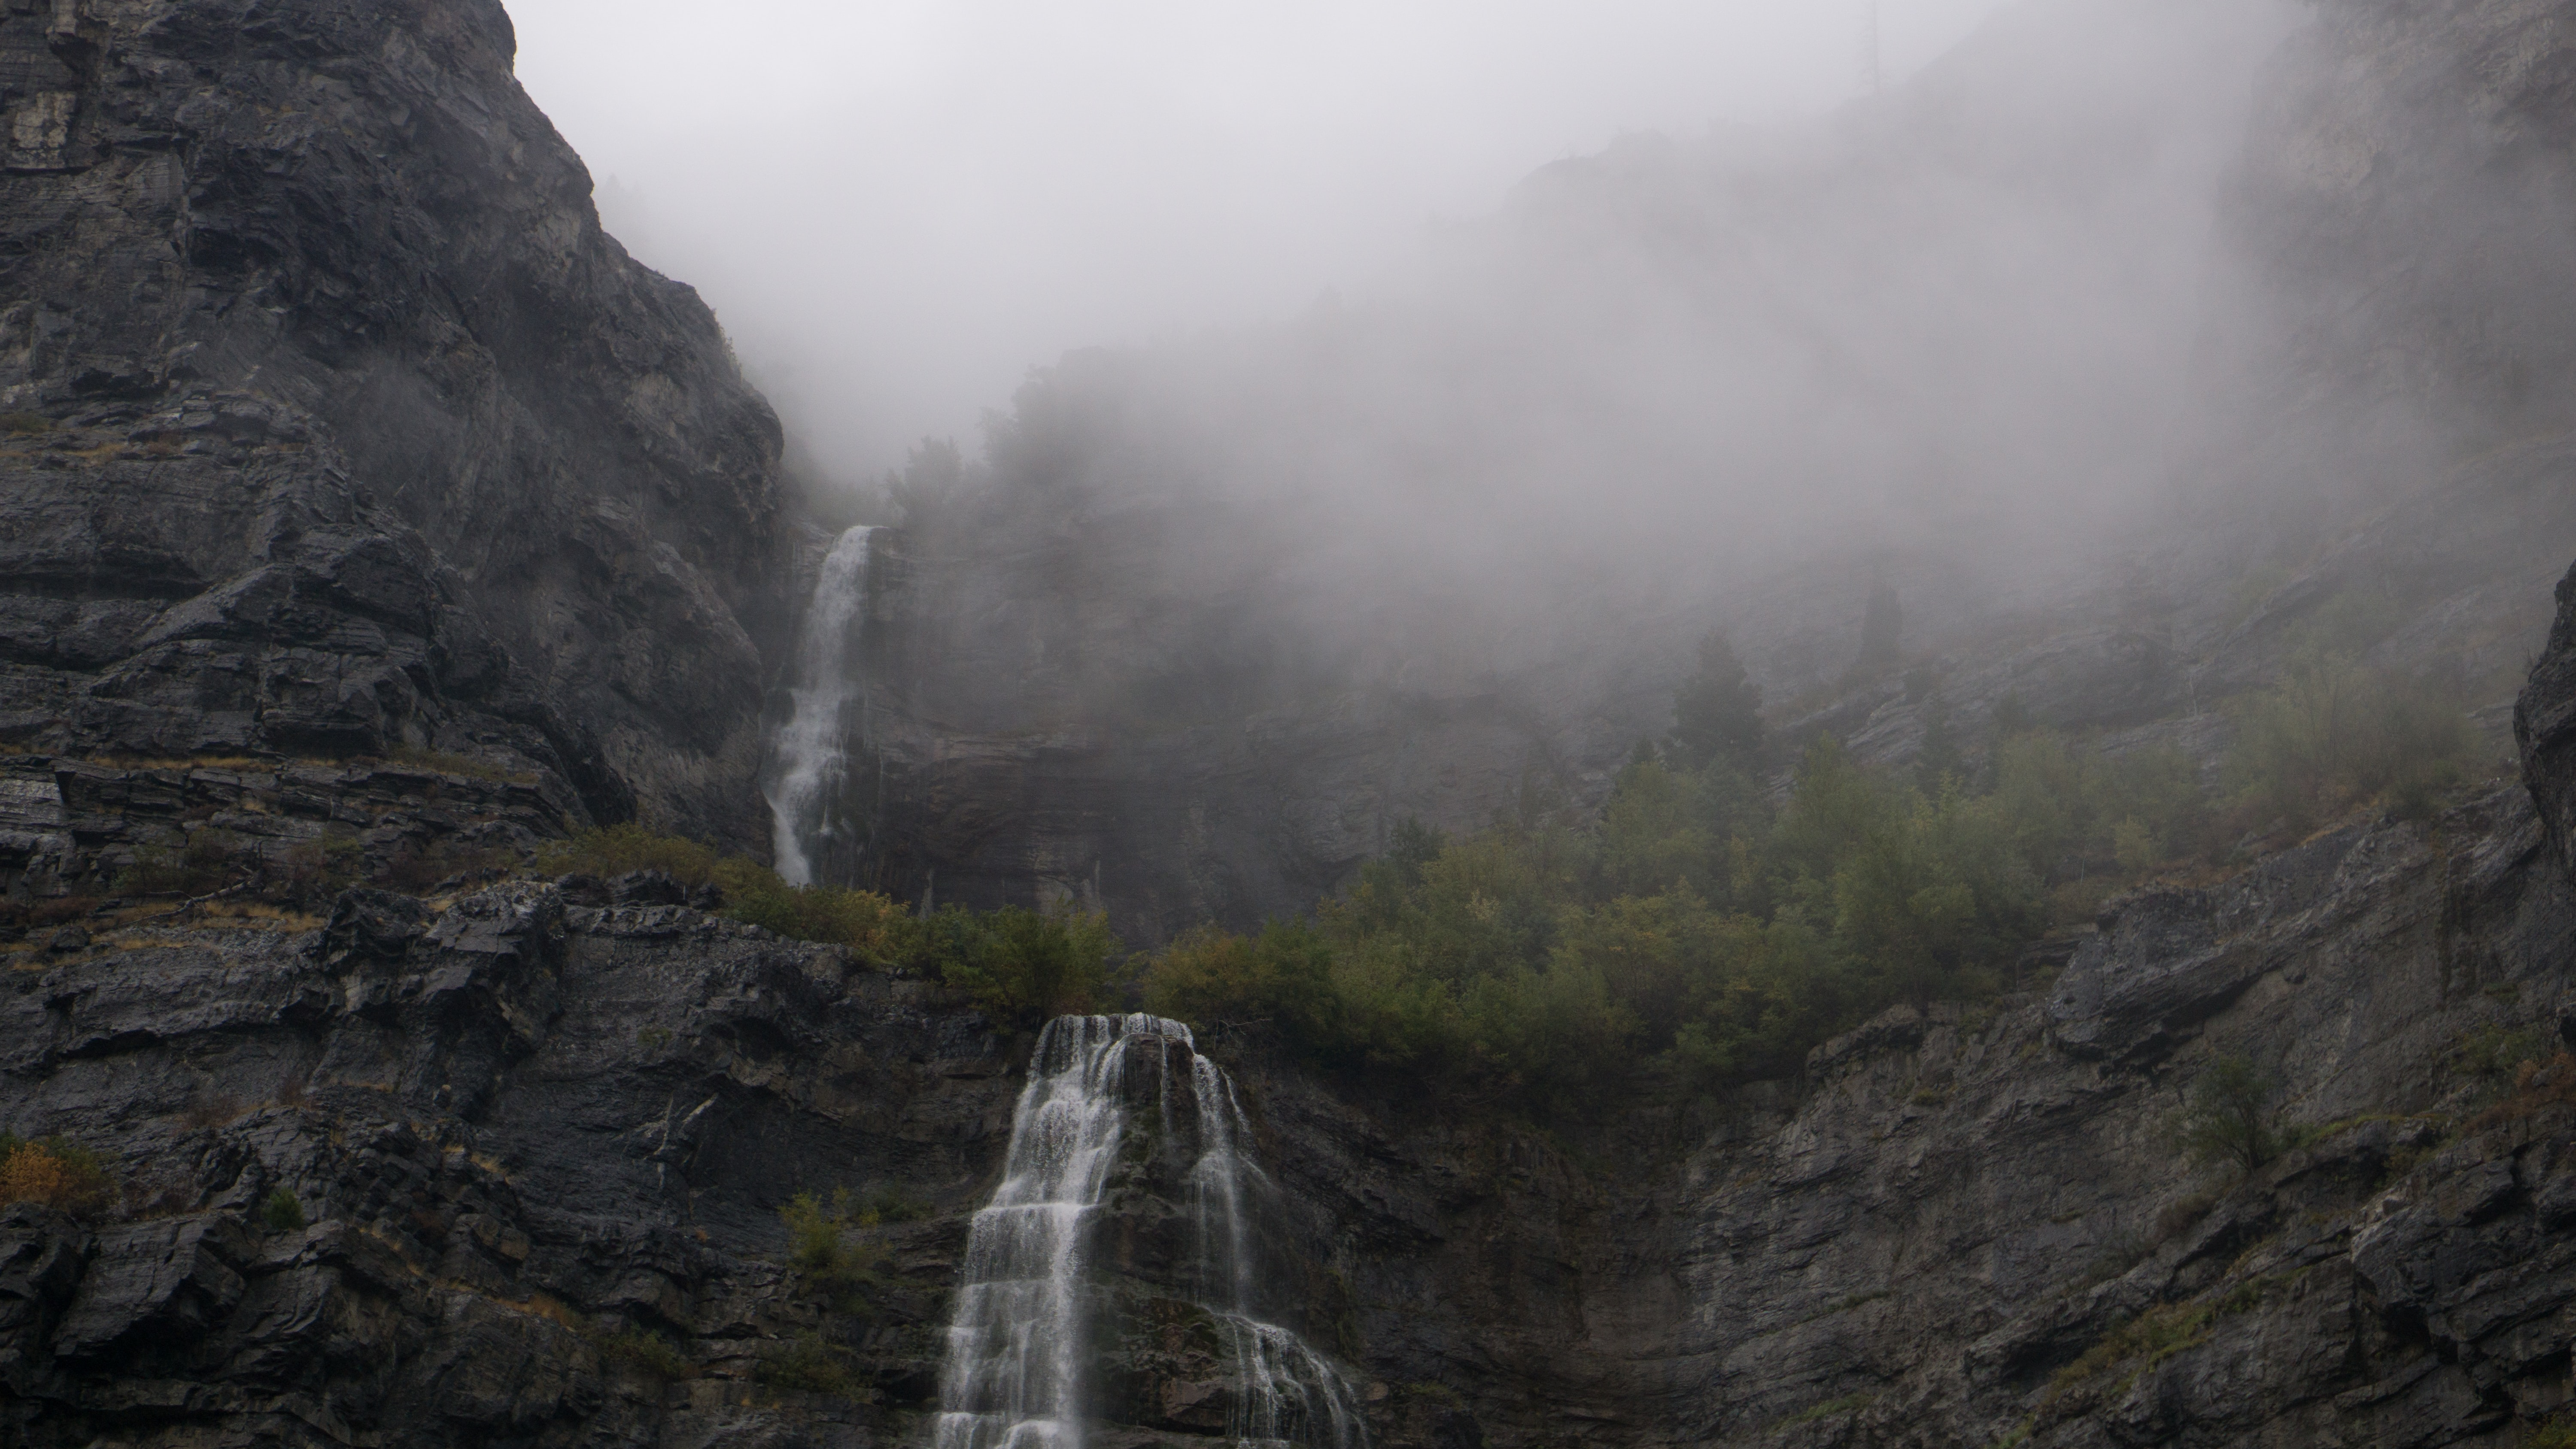 Two waterfalls cascading down a rock face on a foggy day